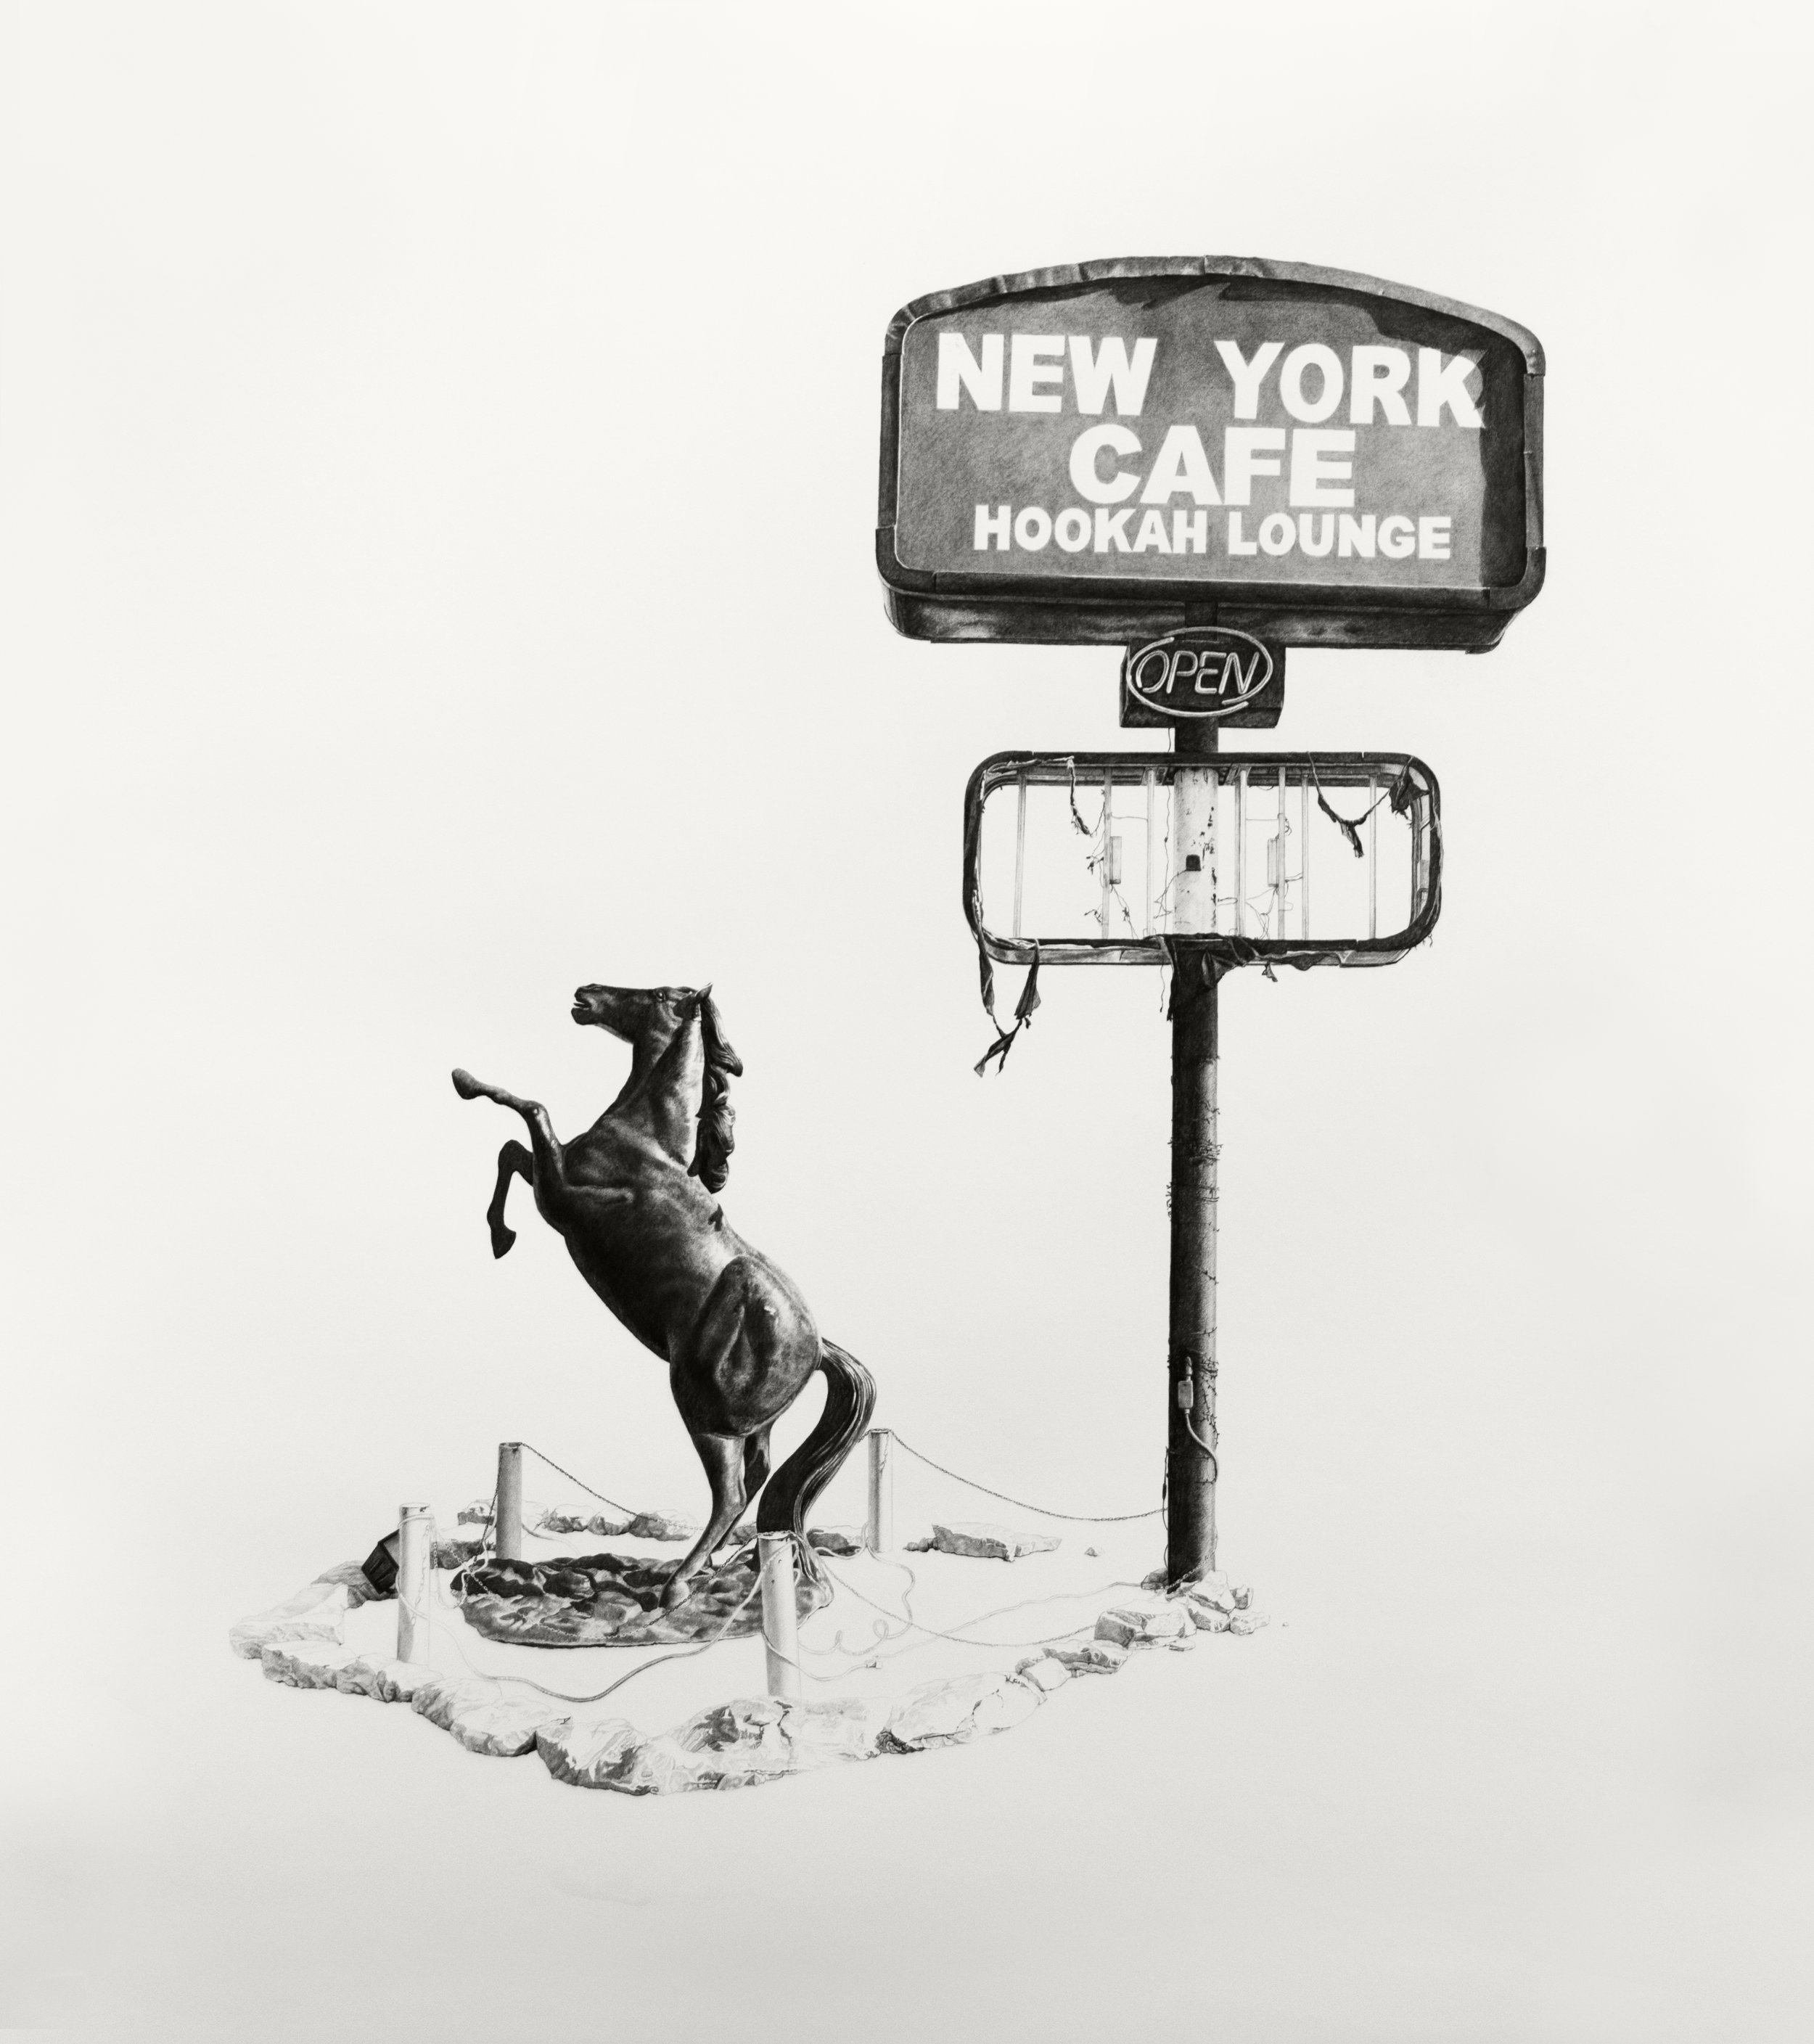 New York Cafe & Lounge